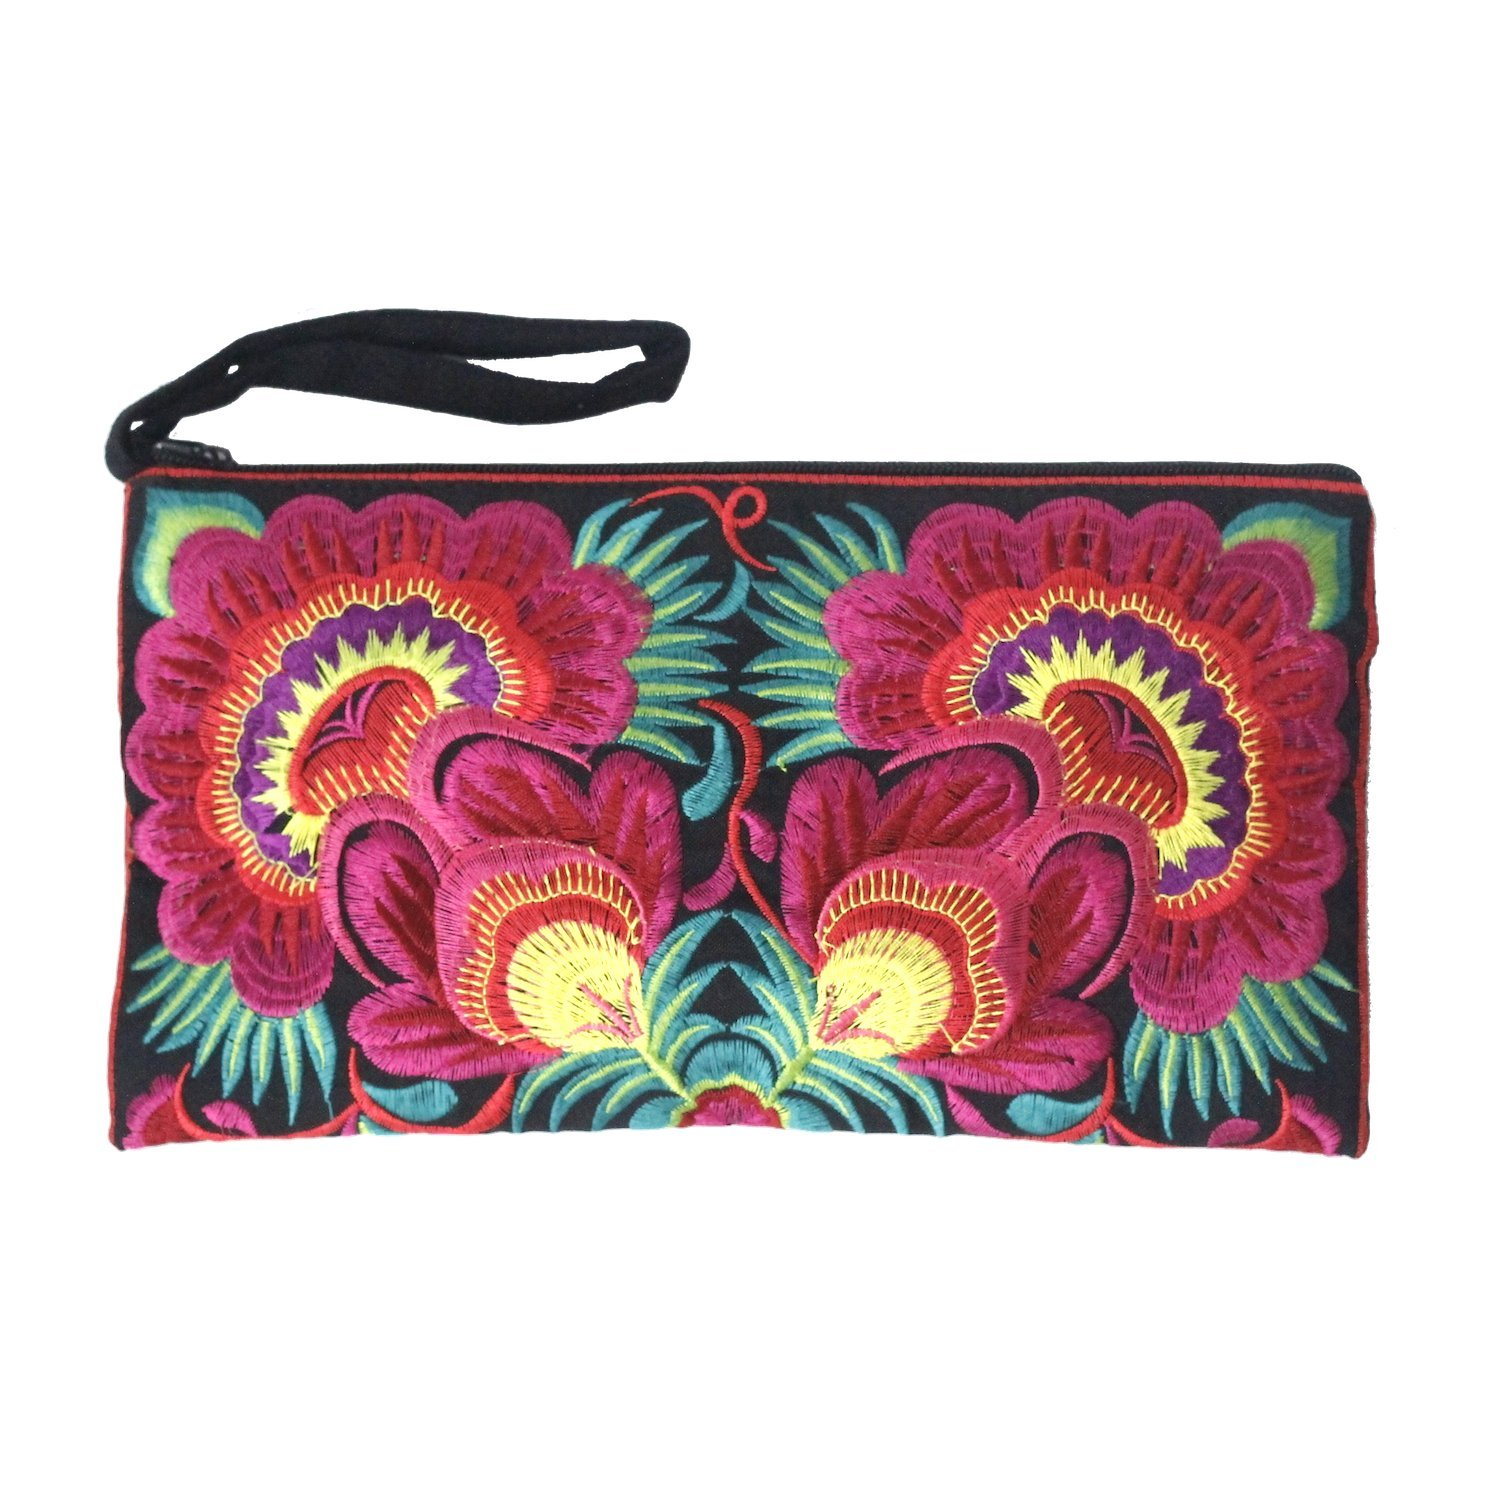 869893c0cccd Sabai Jai - Floral Embroidered Boho Clutch - Handmade Ethnic Flower  Wristlet Purse product image